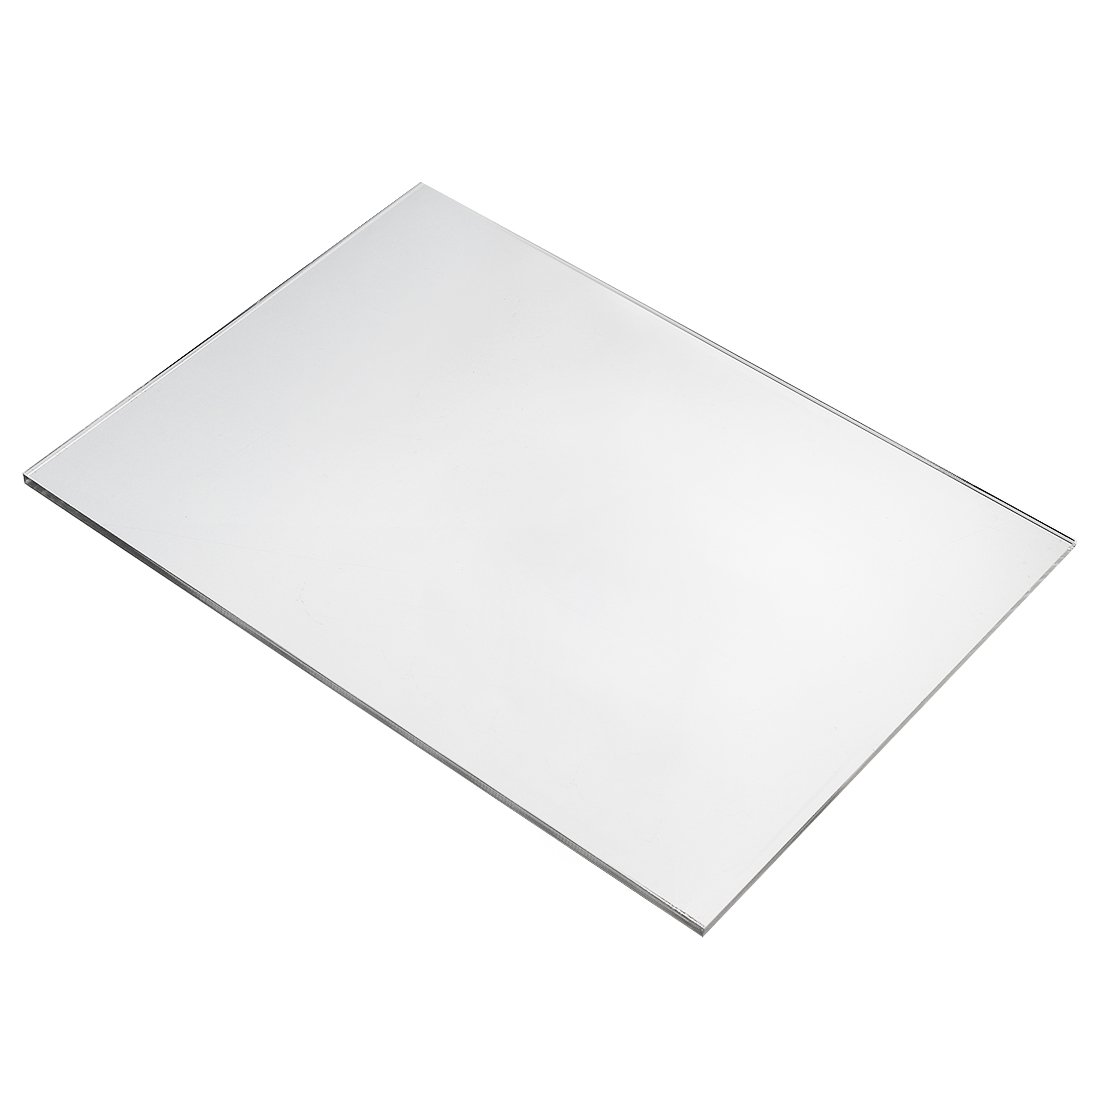 sourcingmap® 1mm Clear Plastic Acrylic Plexiglass Sheet A5 Size 148mmx210mm a15041500ux0350